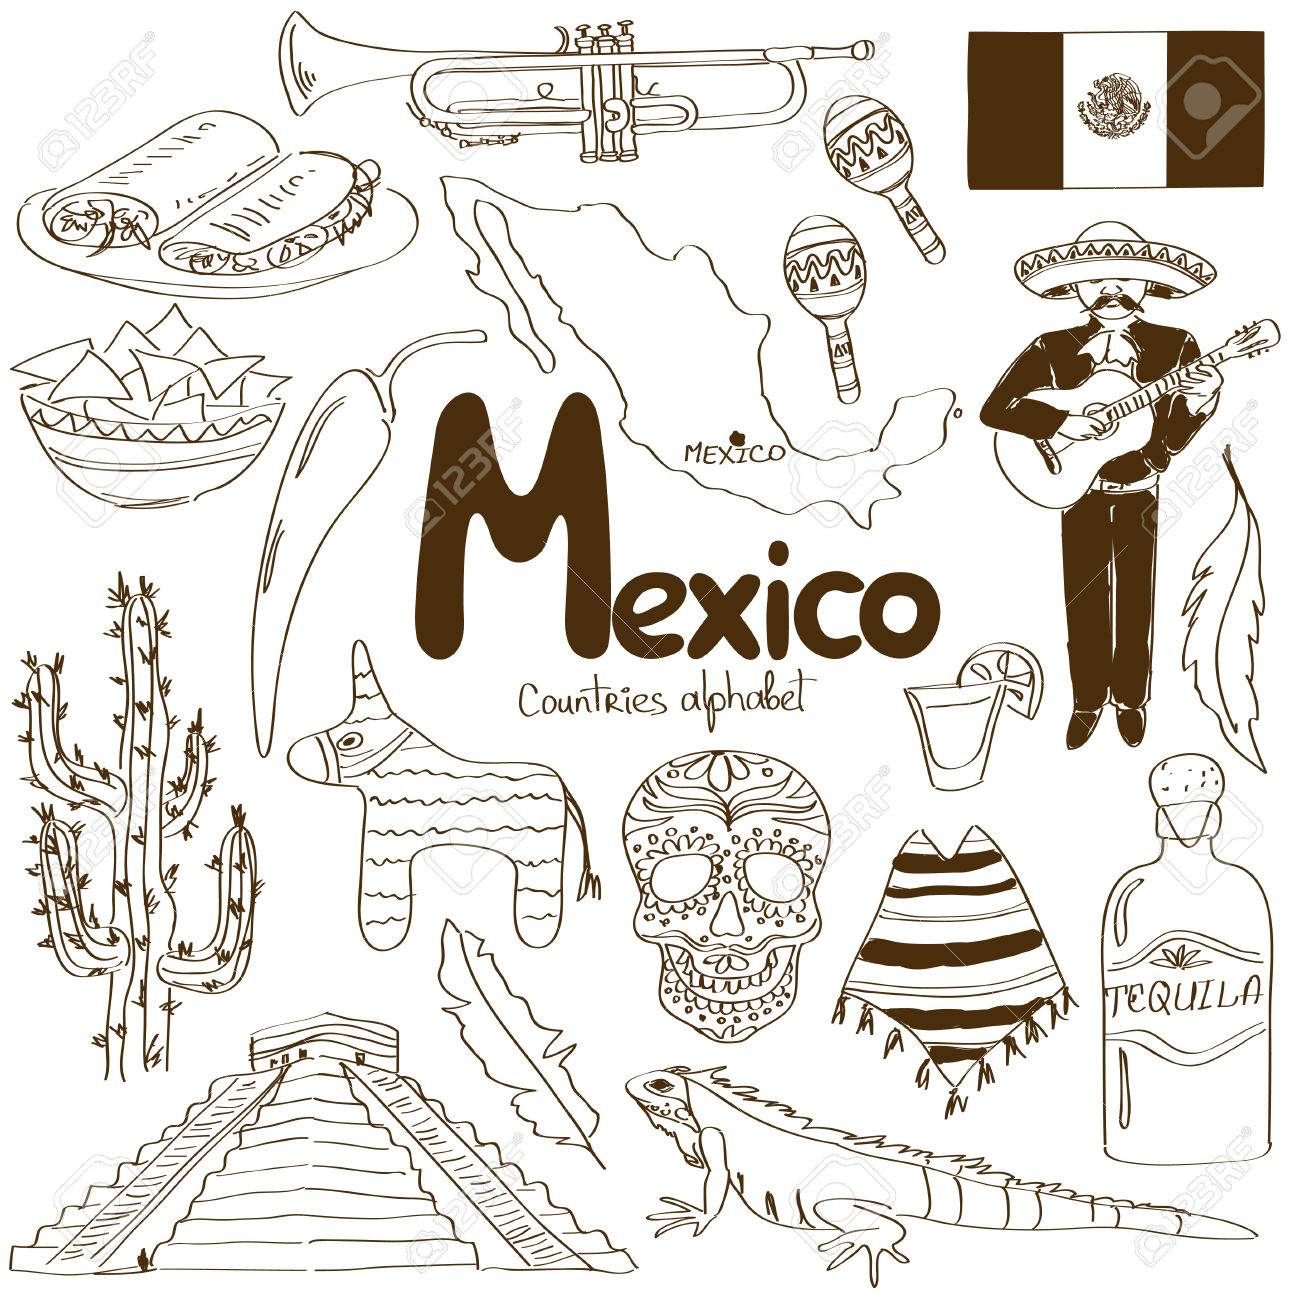 of Mexico icons  countries Mexico Country Vector